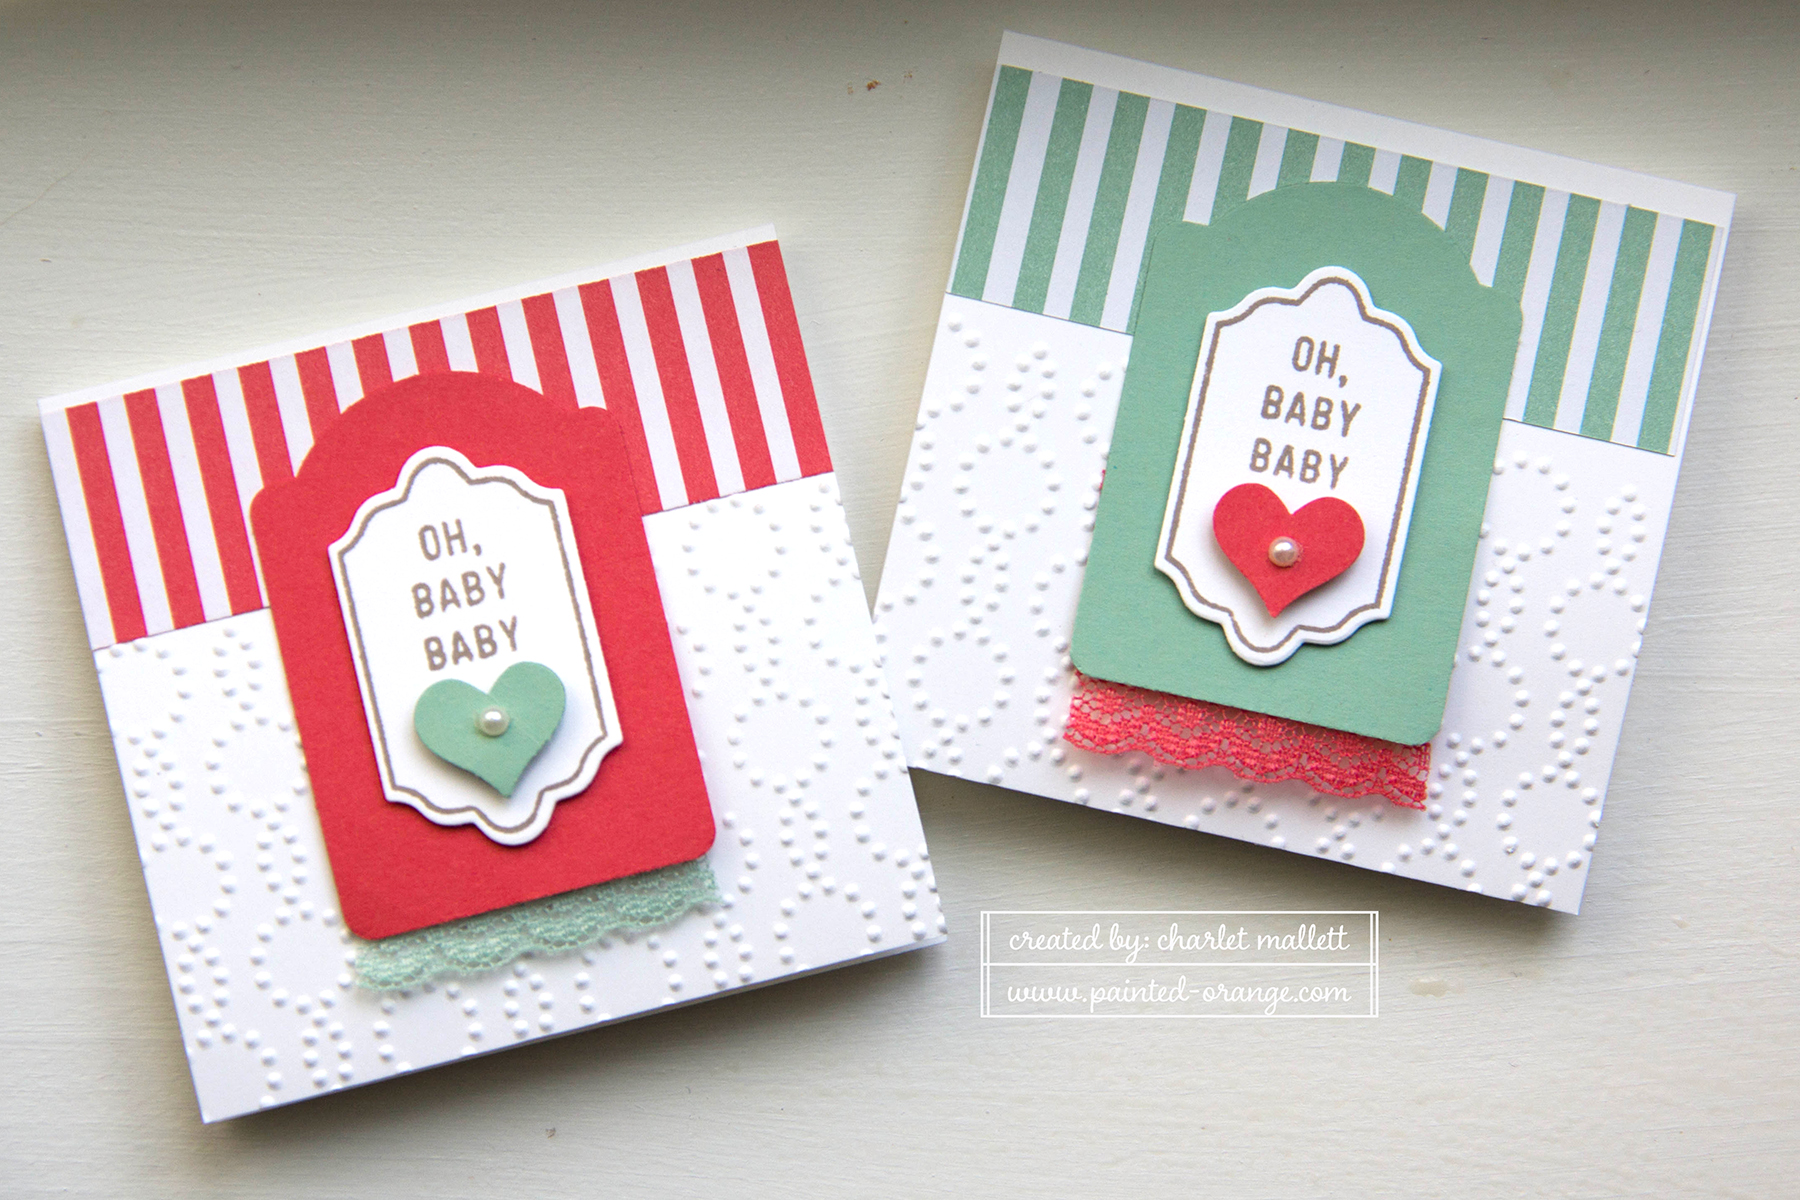 Happy Notes 3x3 notecards